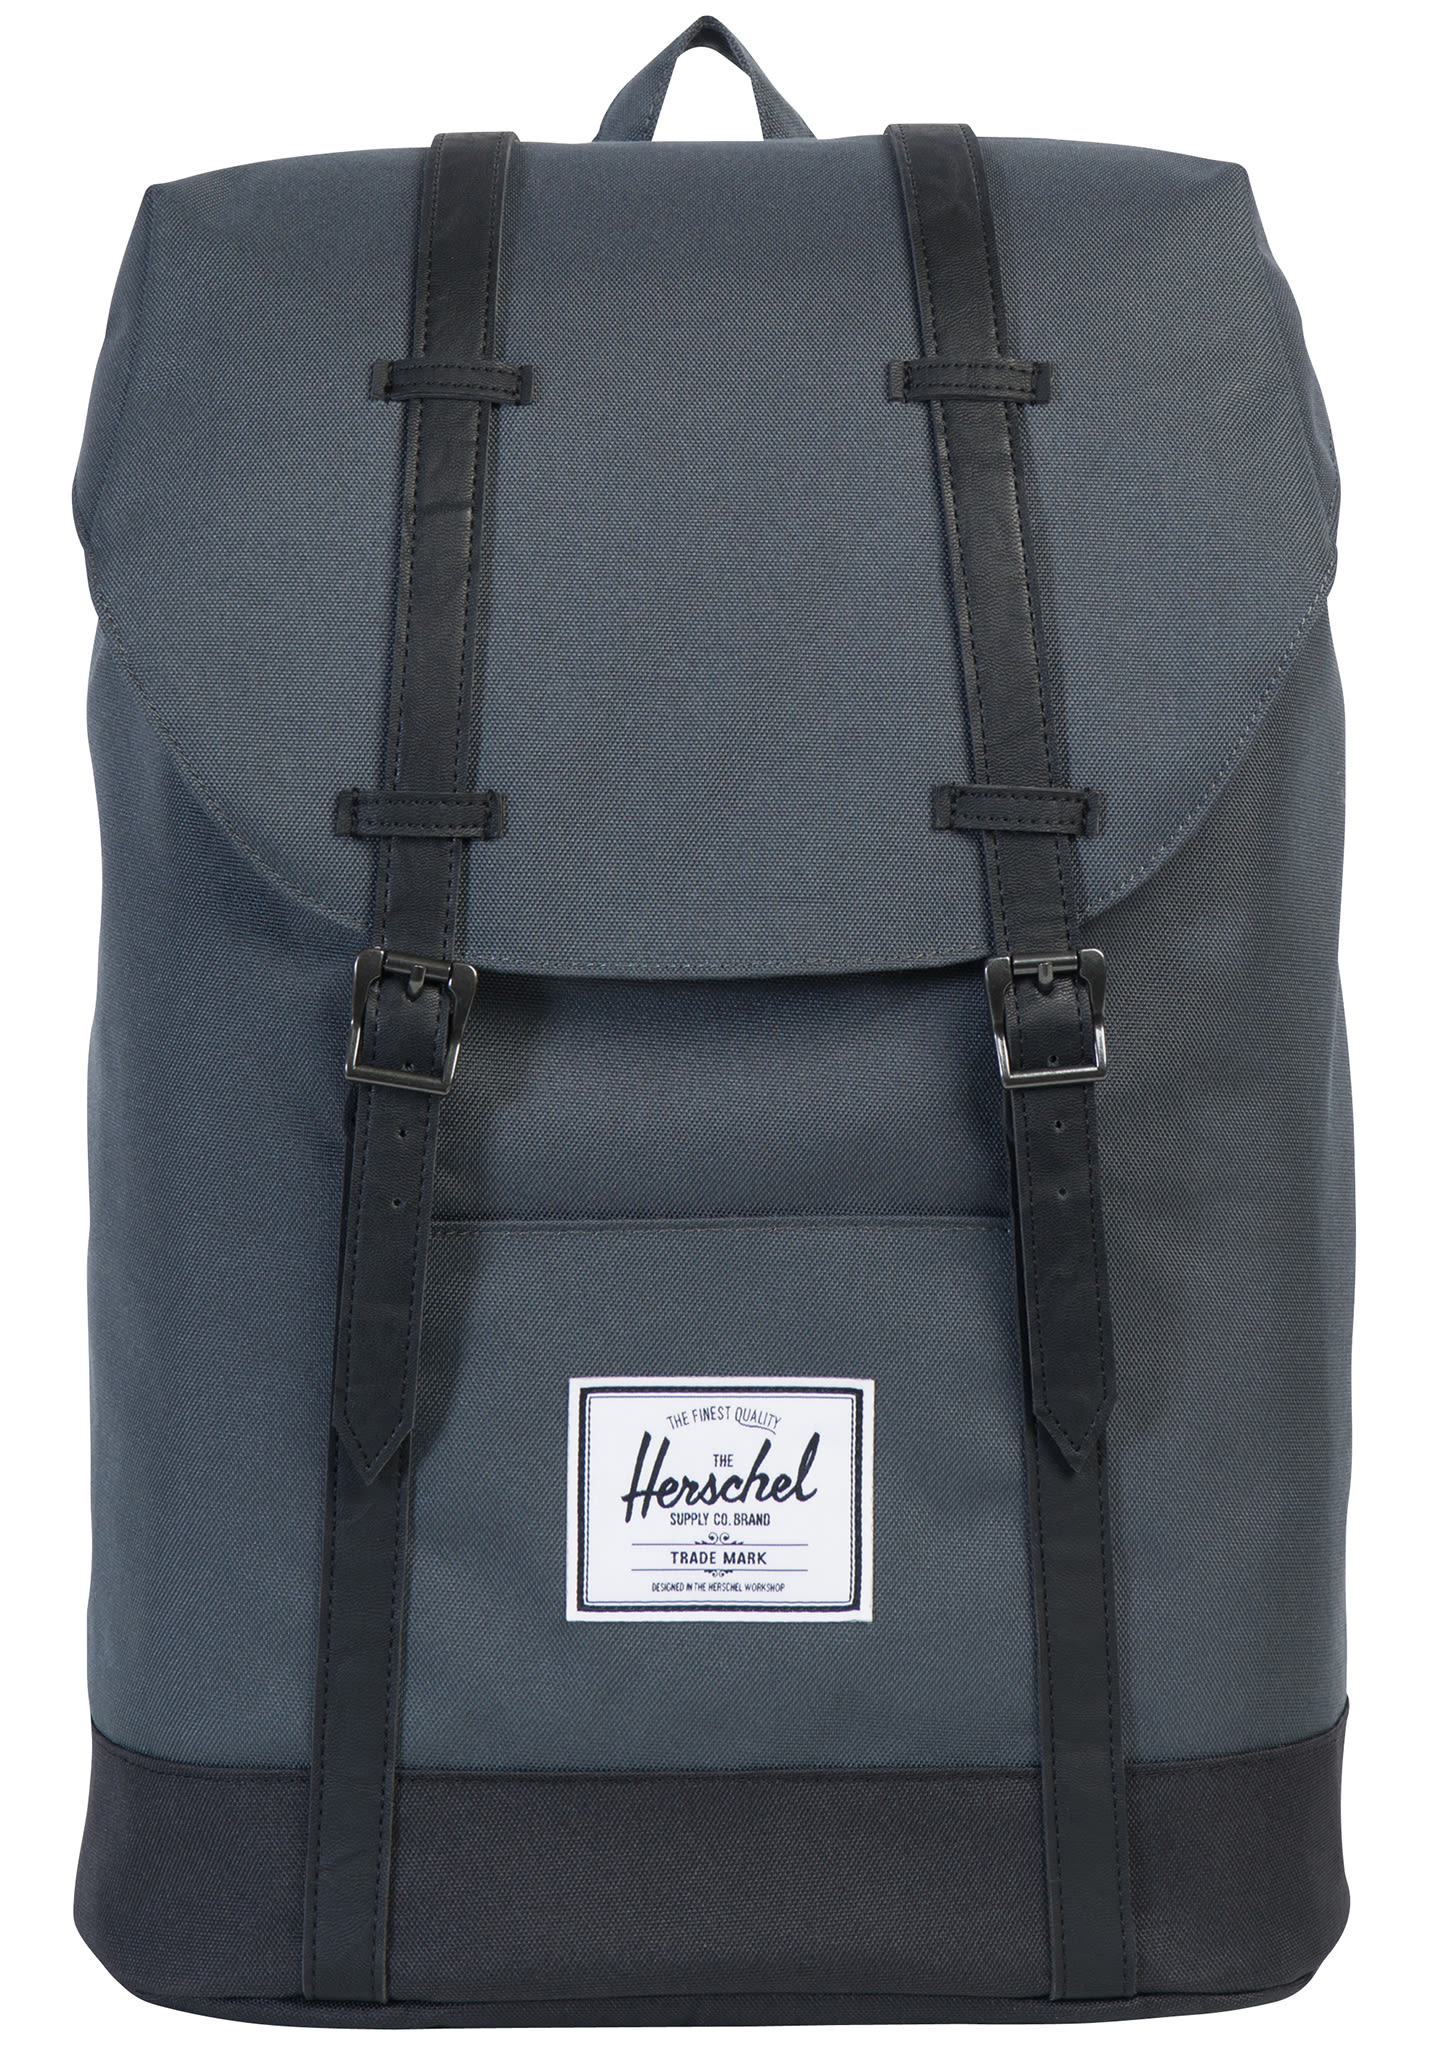 Sac à dos à sangles Herschel Retreat Dark Shadow/Black/Black gris